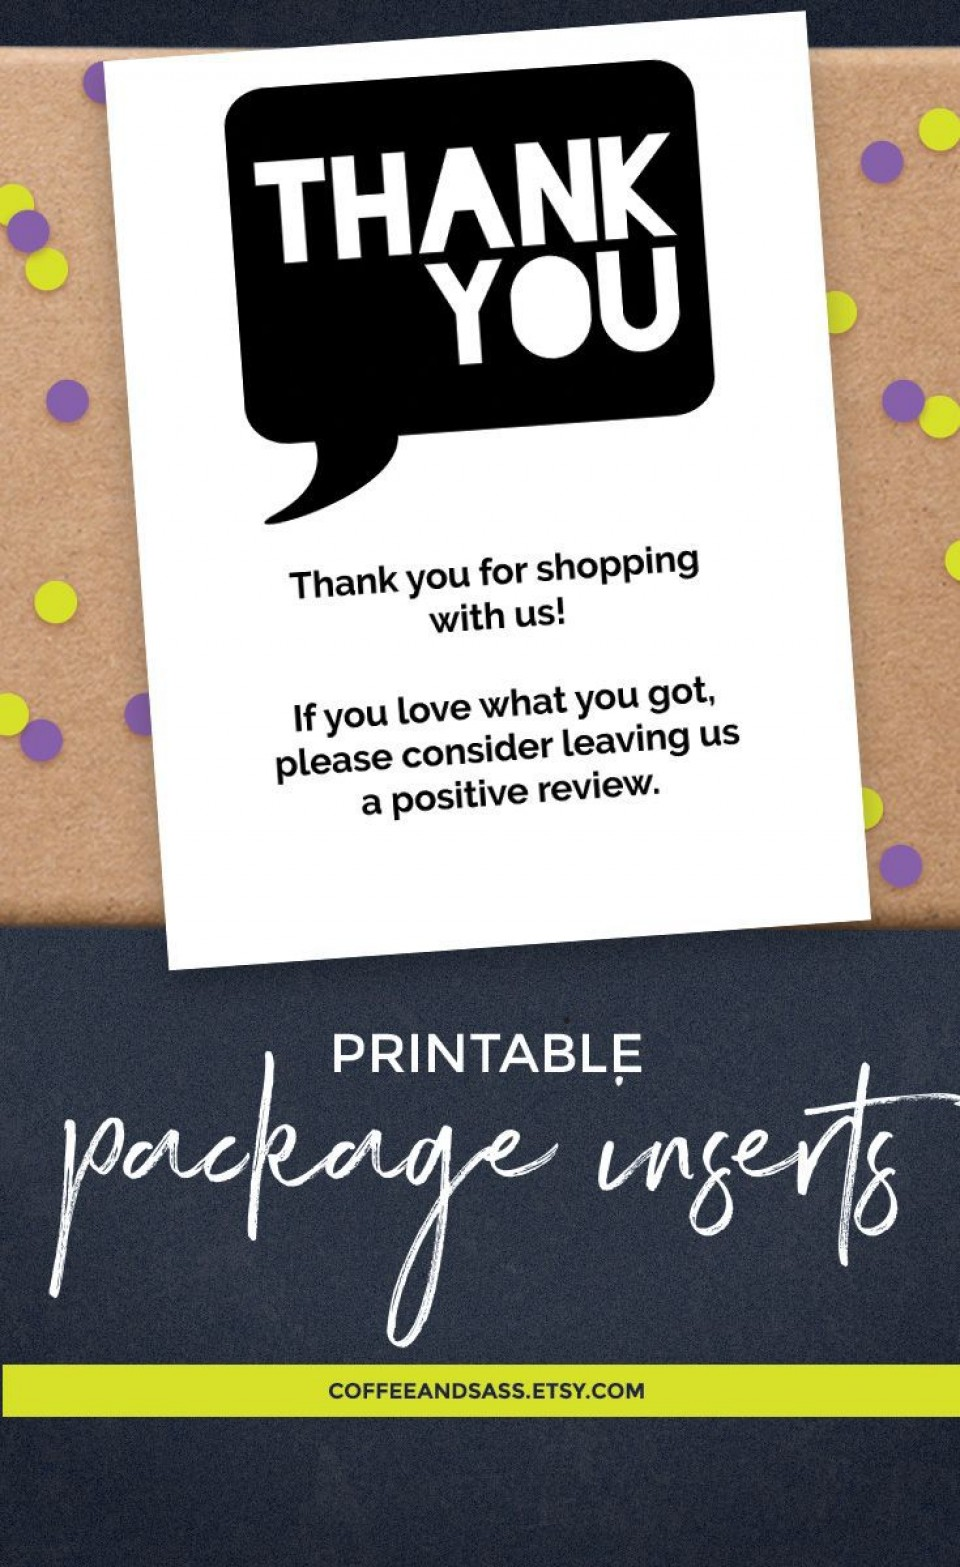 001 Unique Thank You Note Template Pdf Picture  Letter Sample For Donation Of Good960